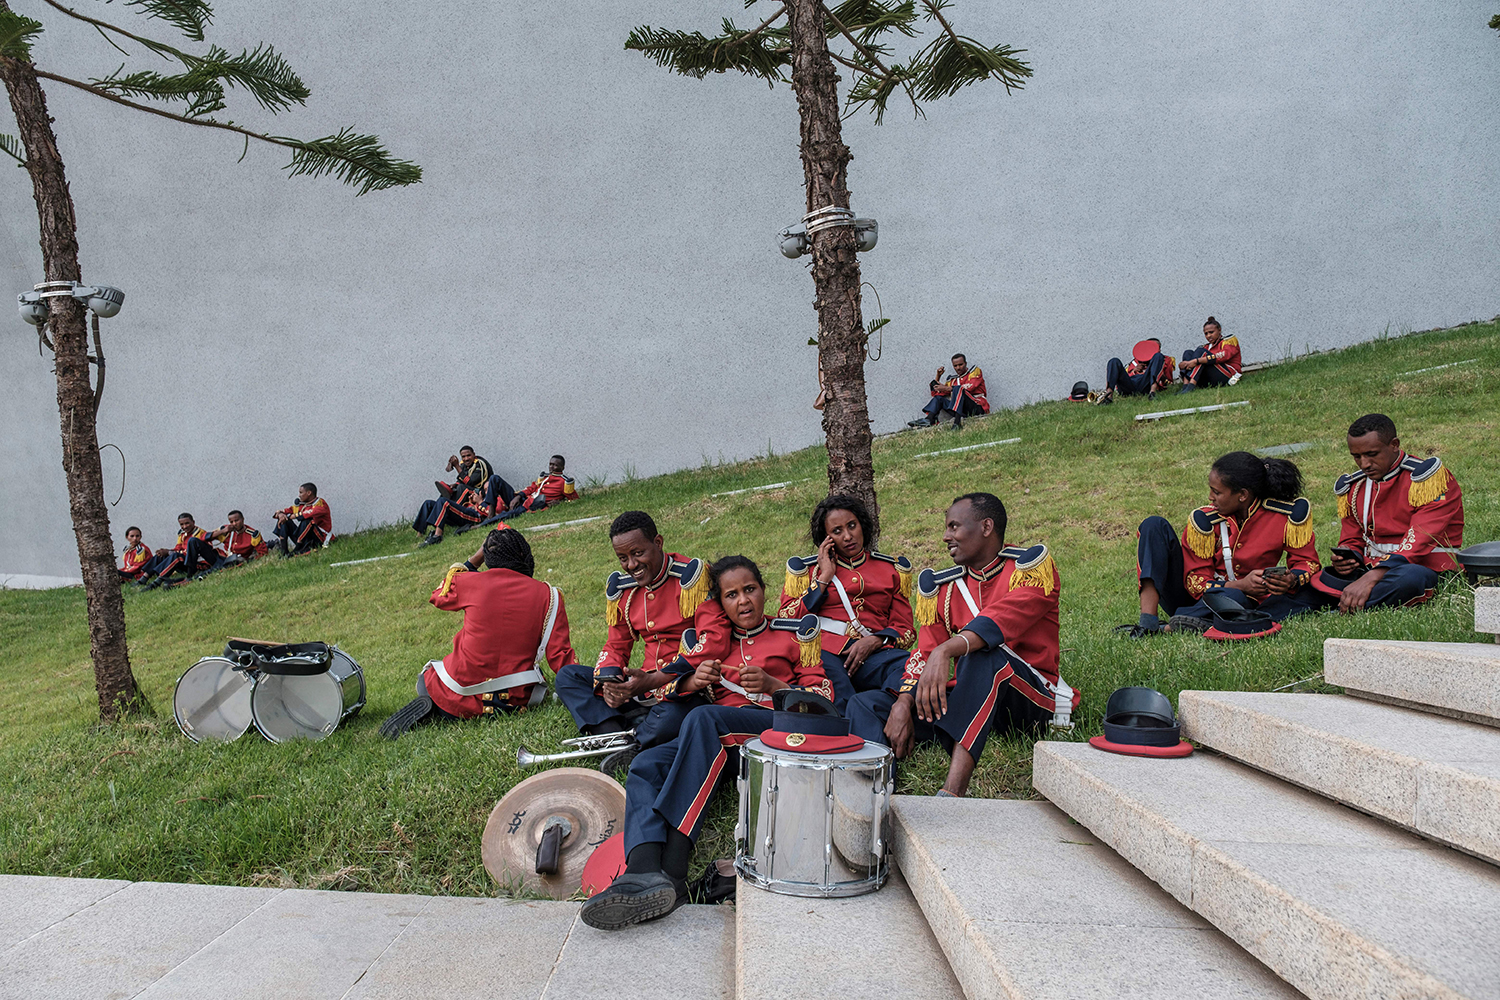 Members of Ethiopia brass band rest